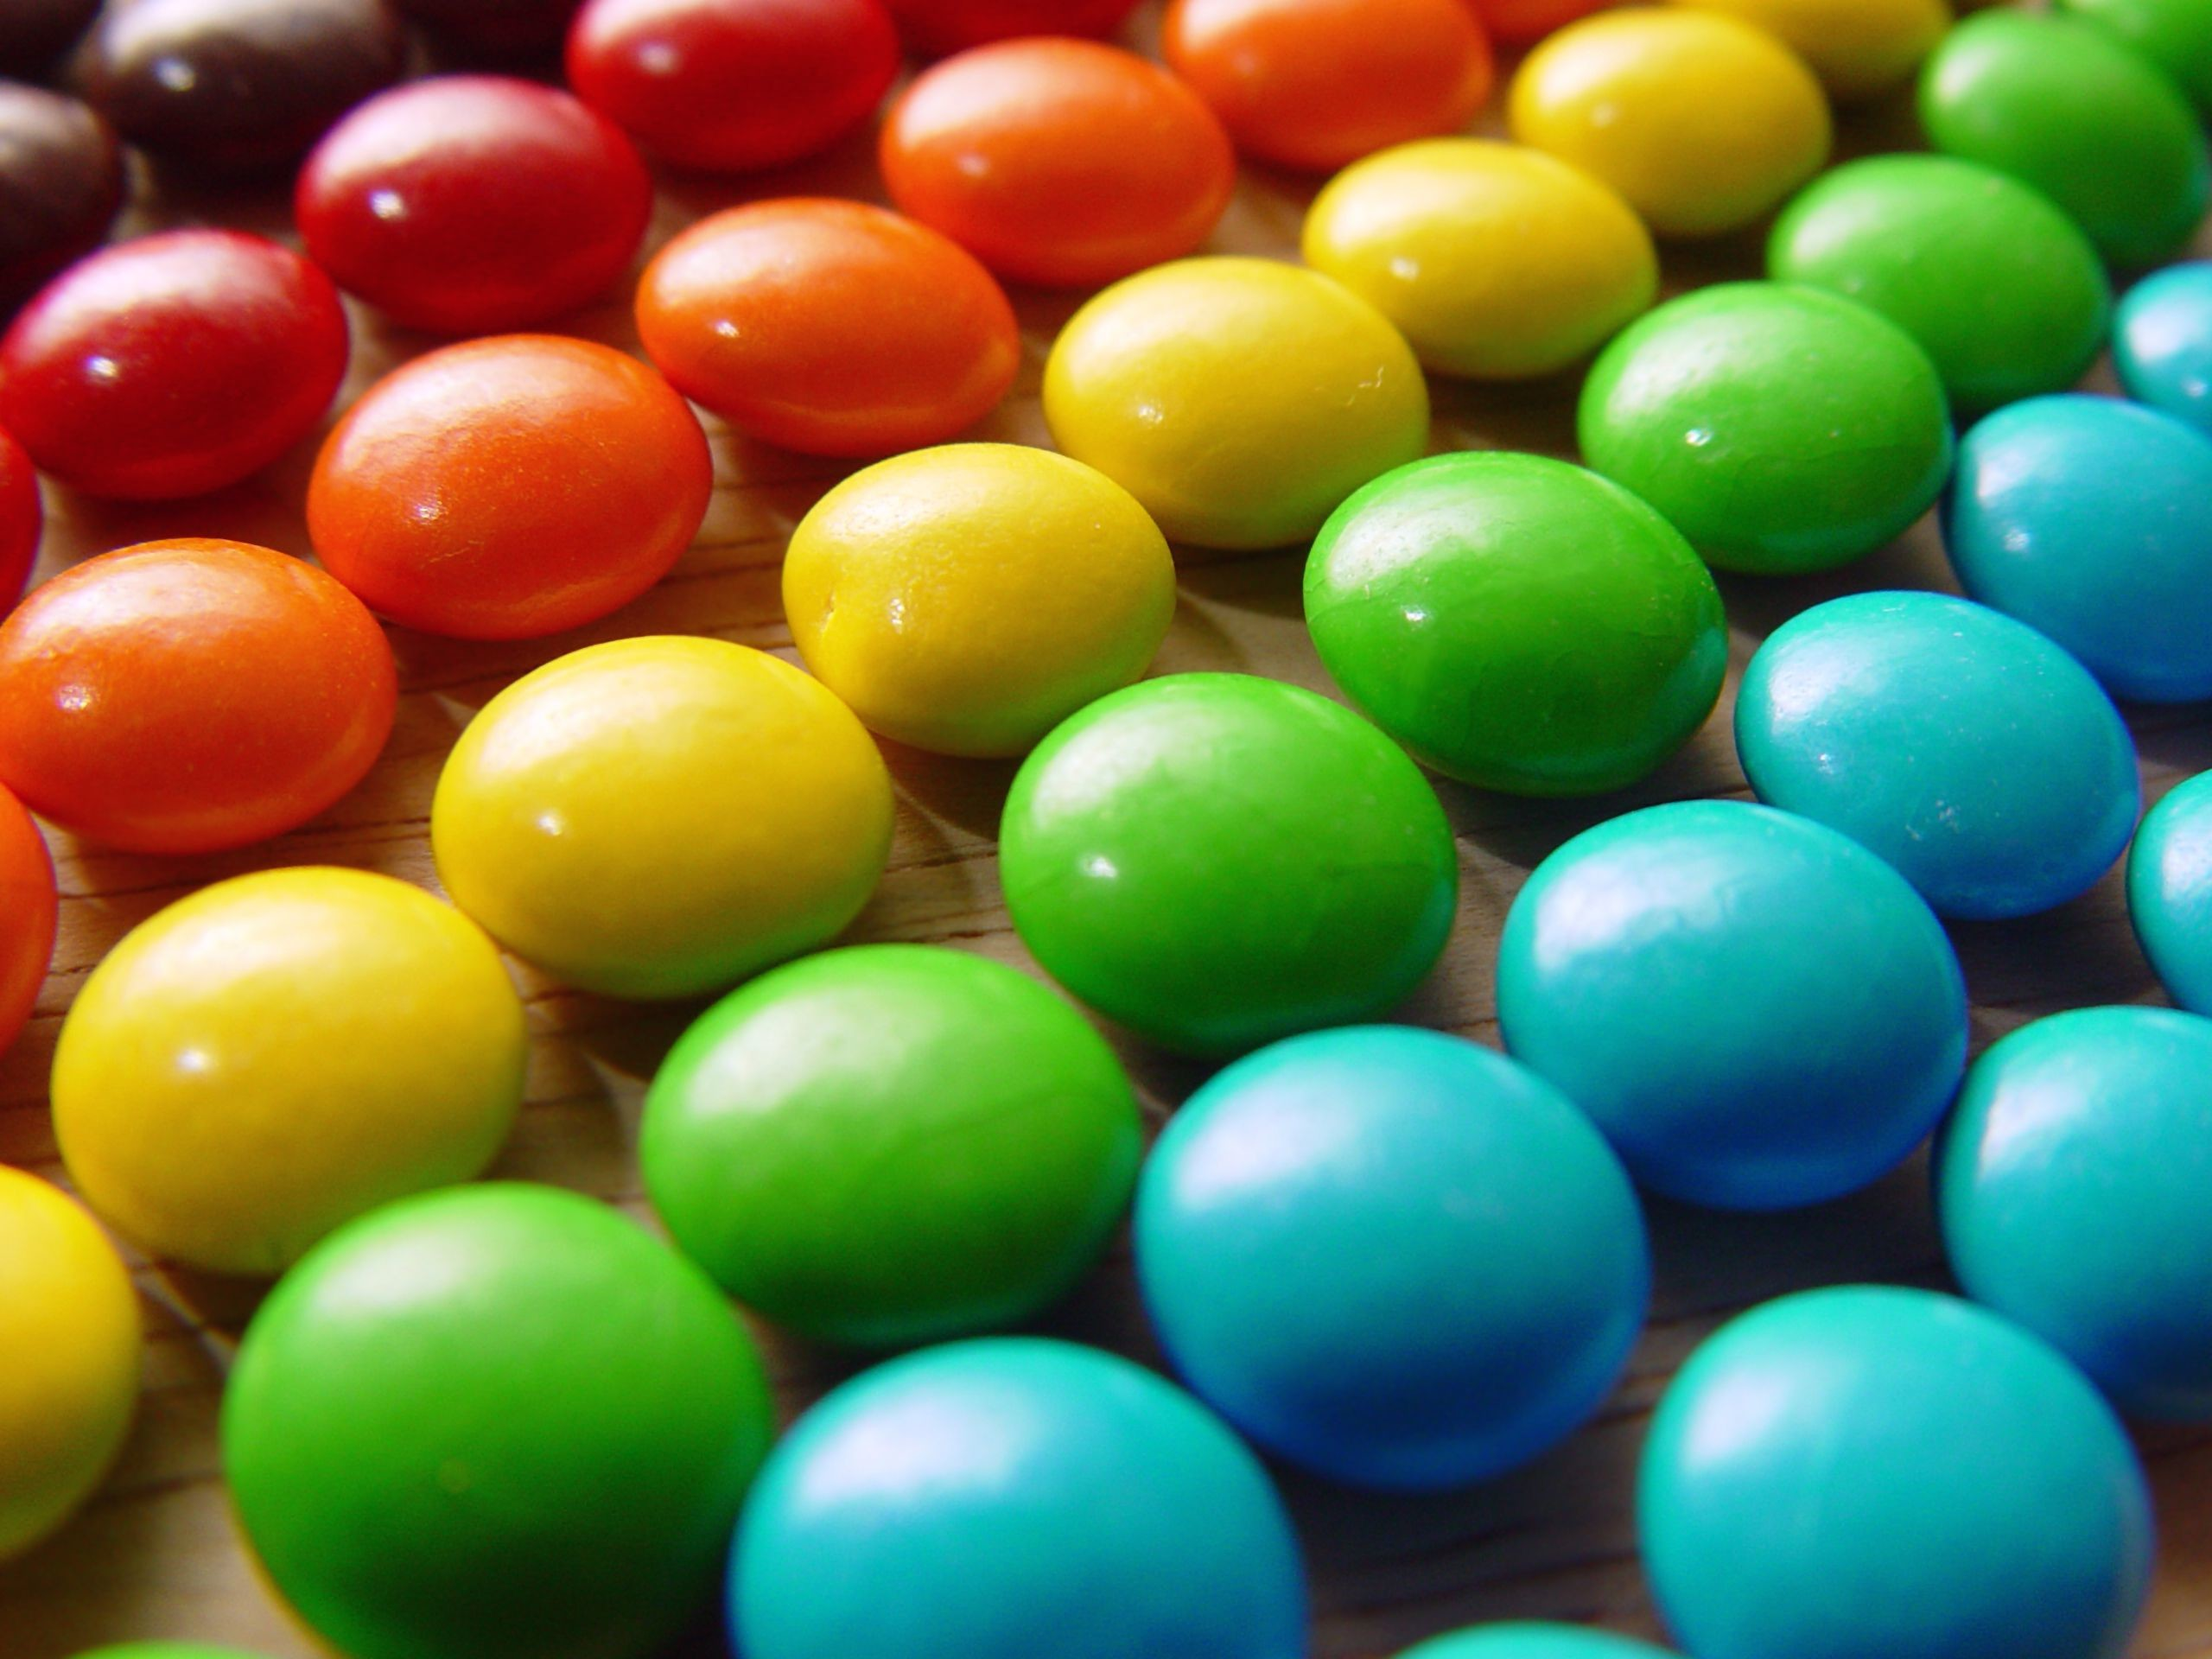 Res: 2560x1920, Skittles